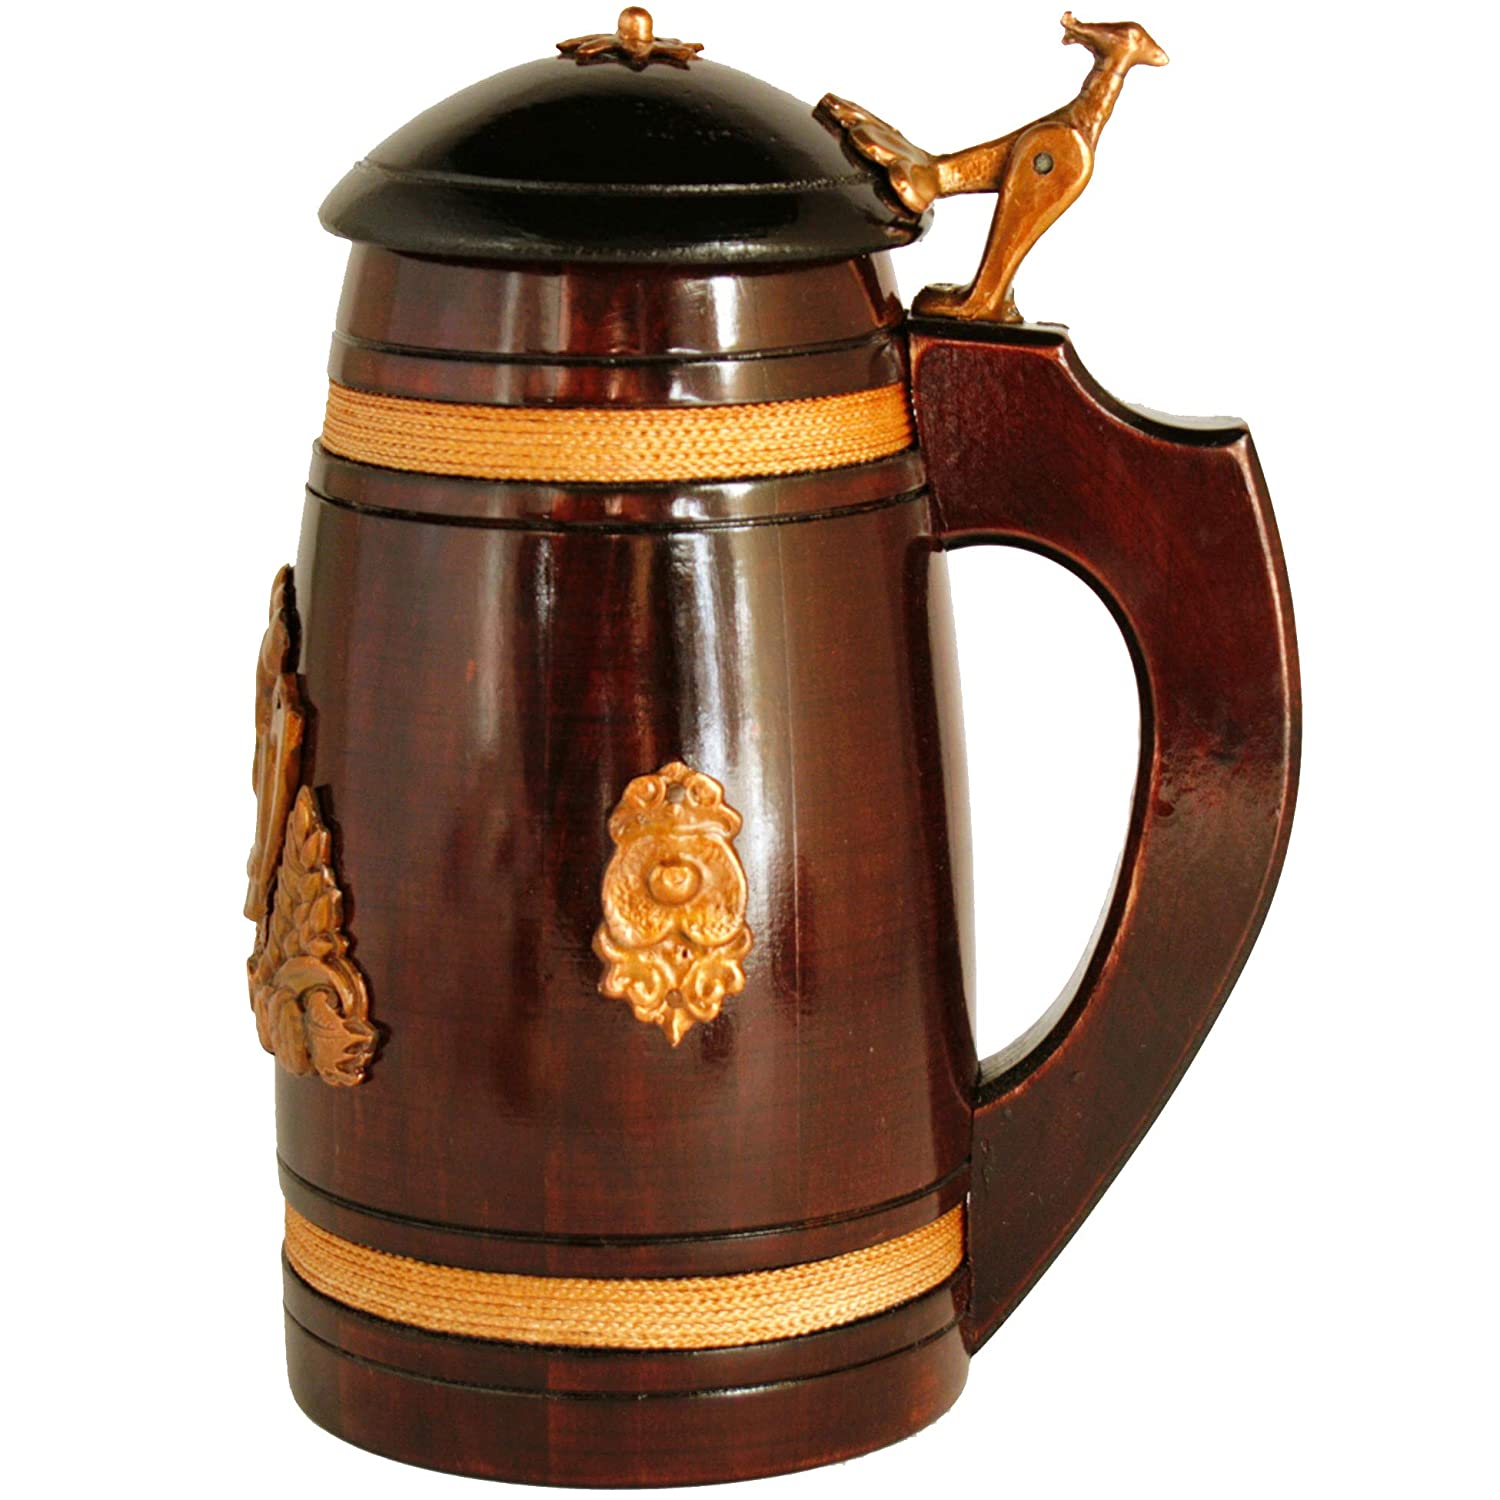 Medieval German style Mini Beer Stein with Lid 14 oz. Renaissance Oktoberfest Wooden Mug for Men. Old Times Small Coffee Drinking Cup. Authentic Wood Tankard with Handle. Fathers Day, Birthday Gift BarvA